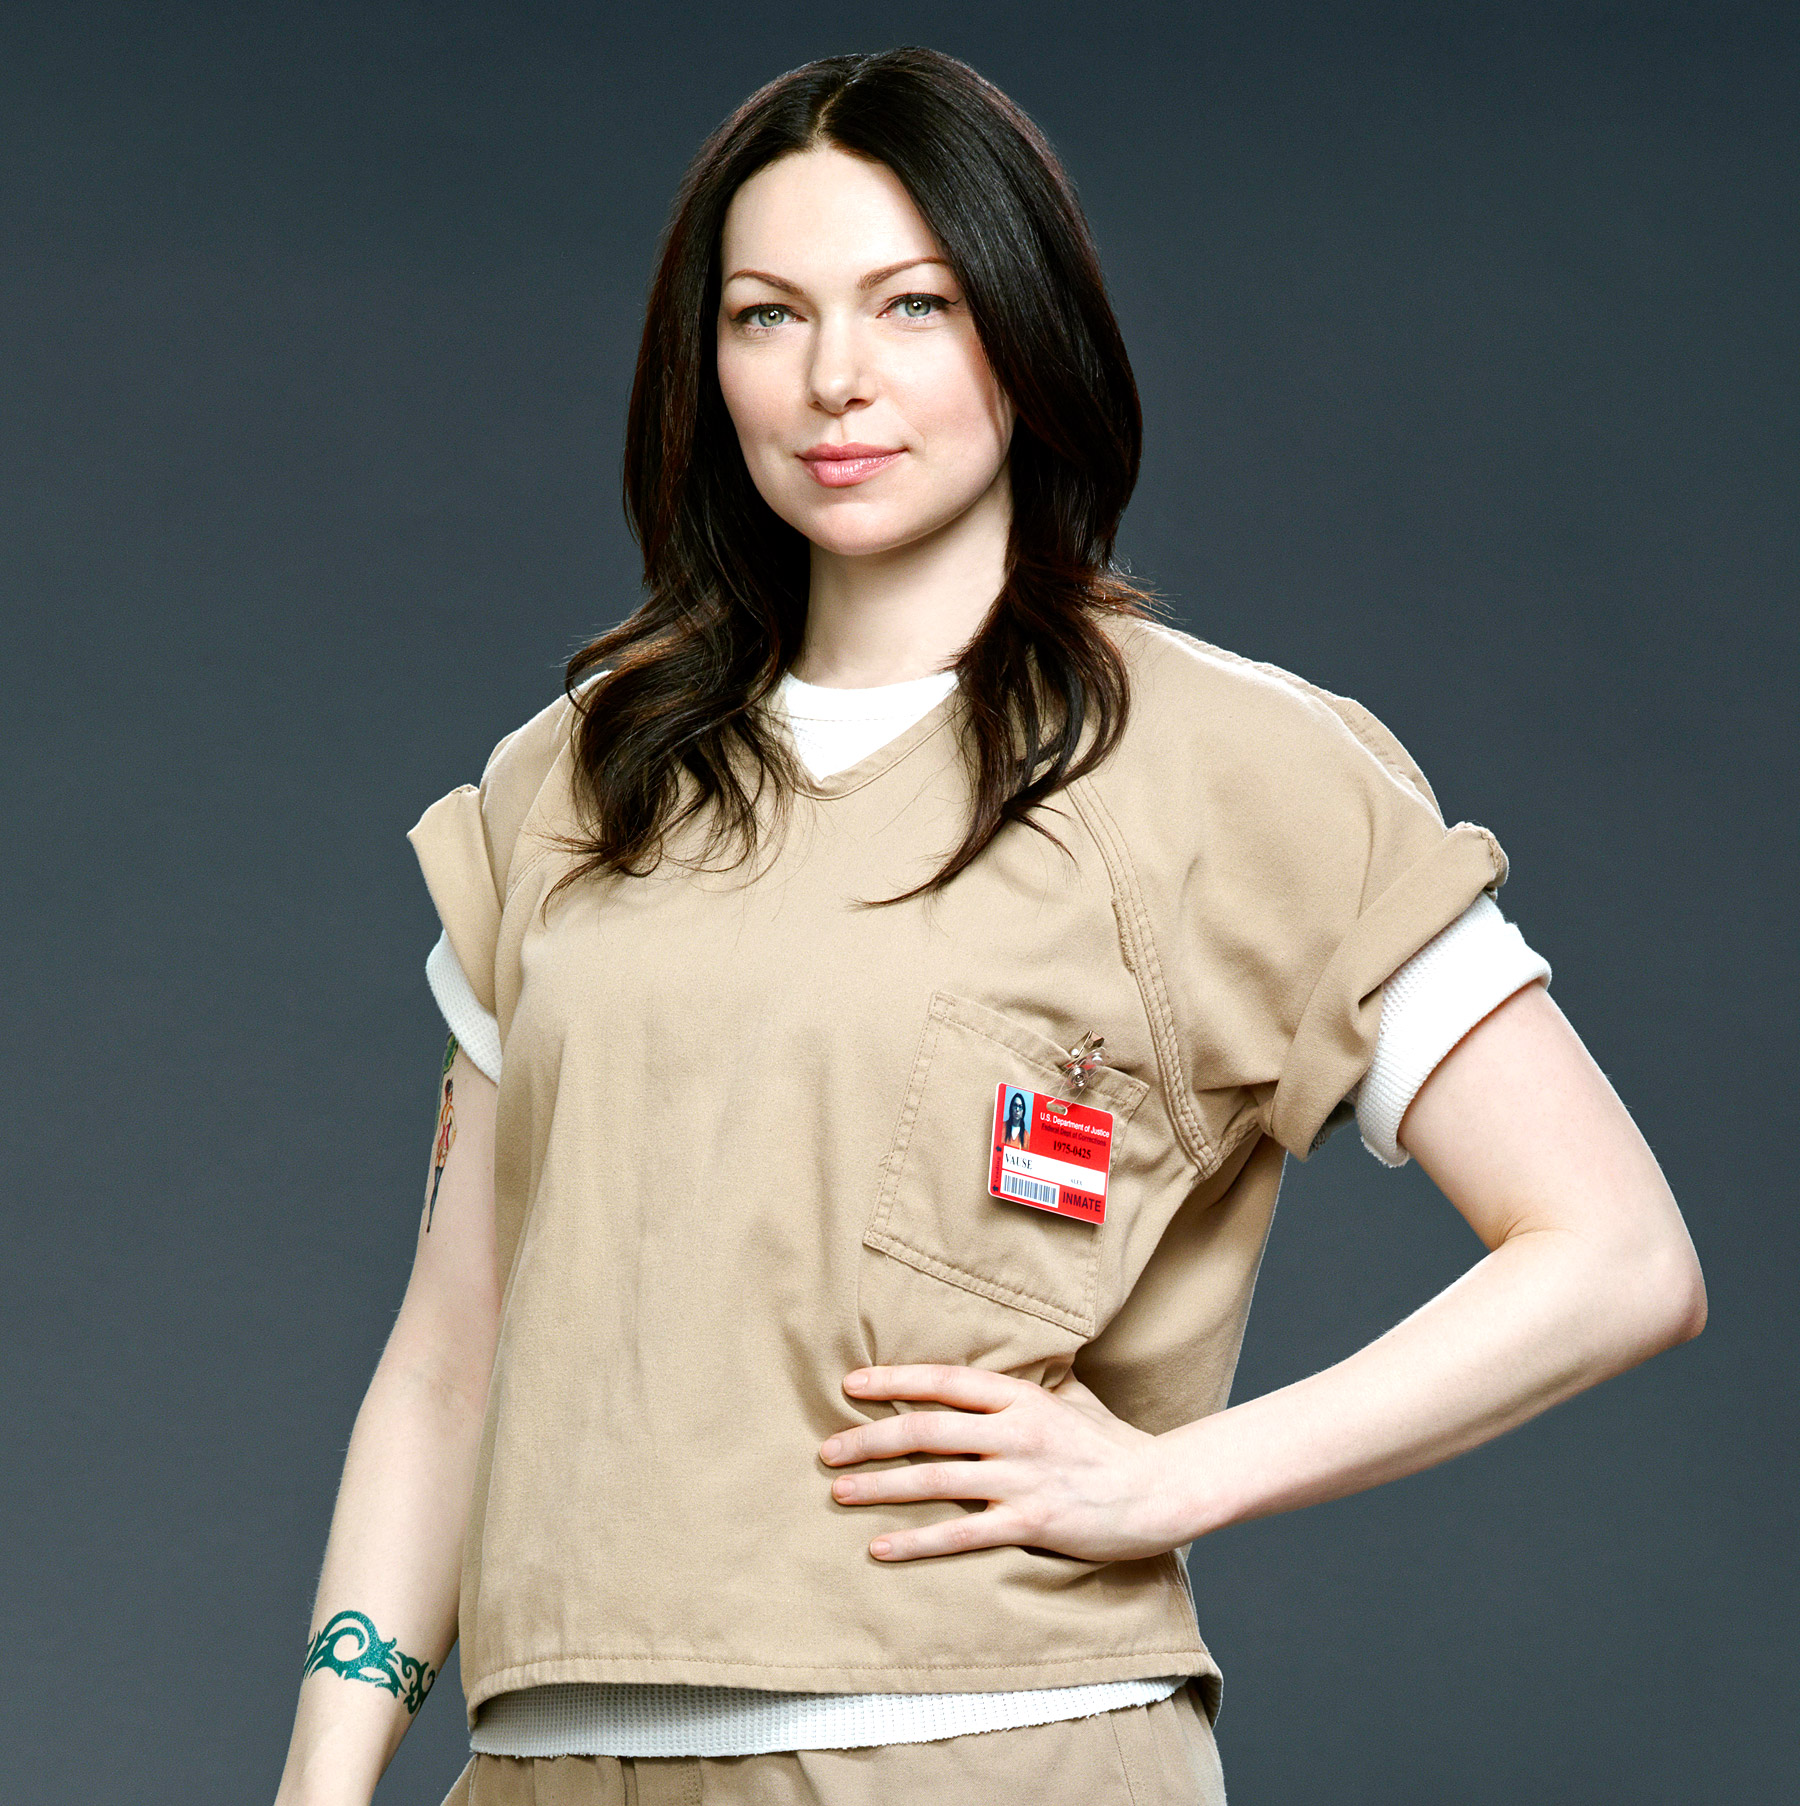 1391450227_laura-prepon-zoom